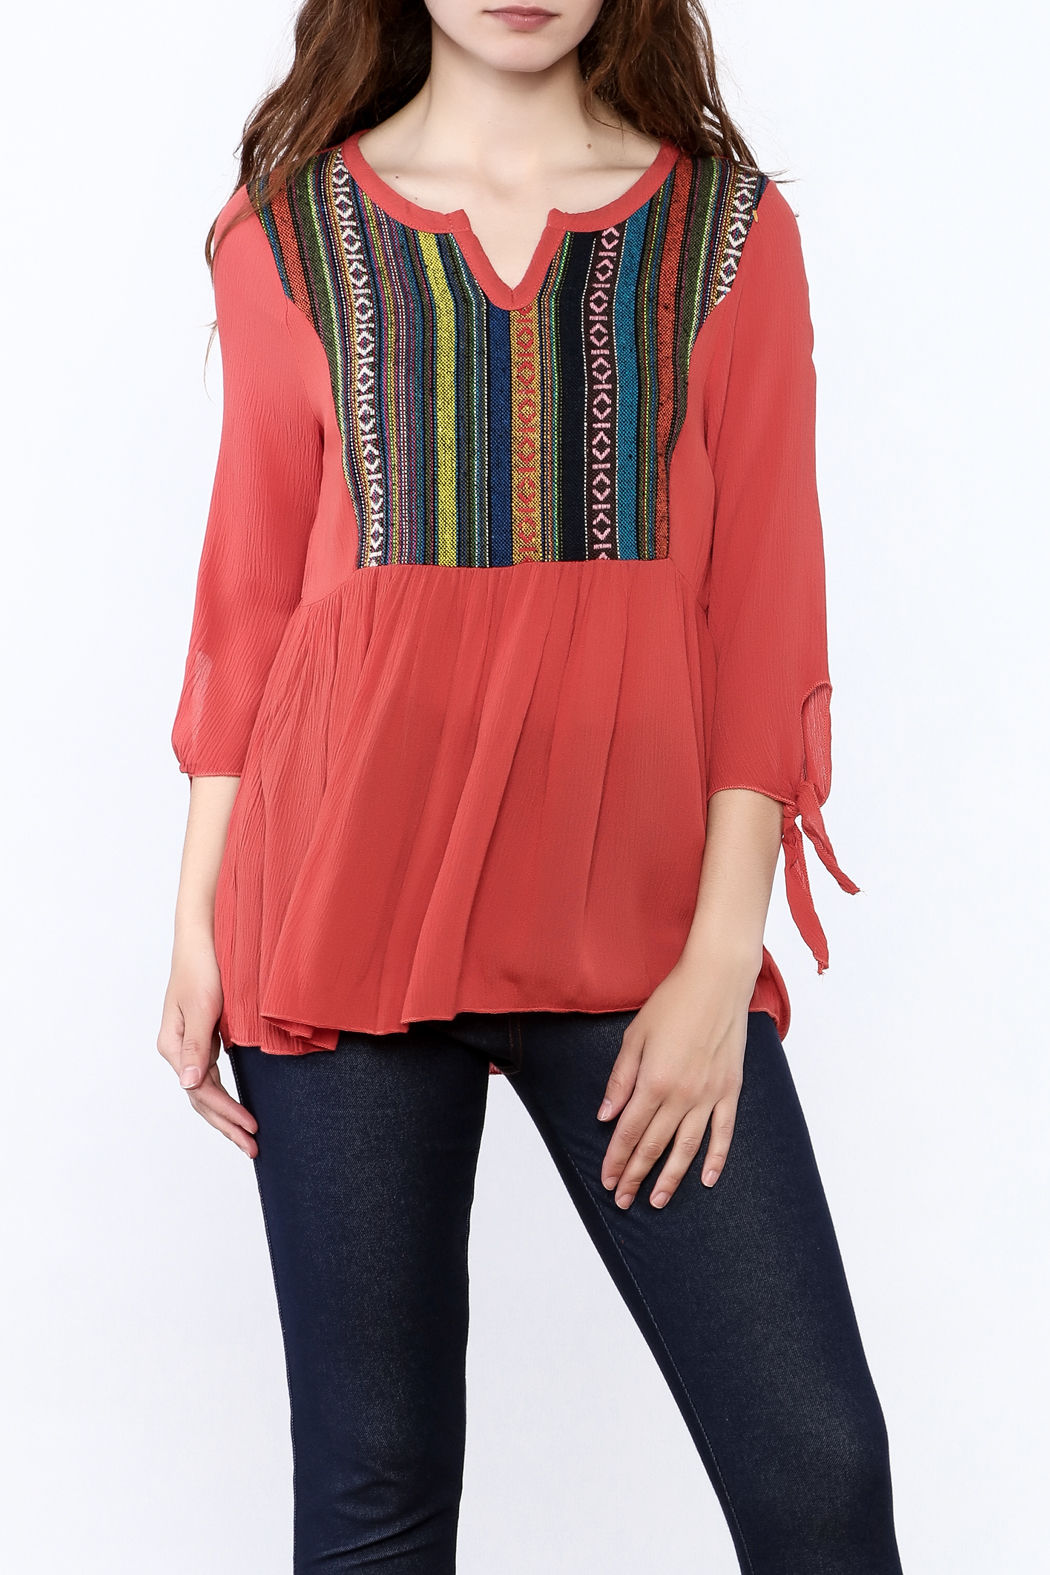 Tea n Rose Sausilito Embroidered Top - Main Image